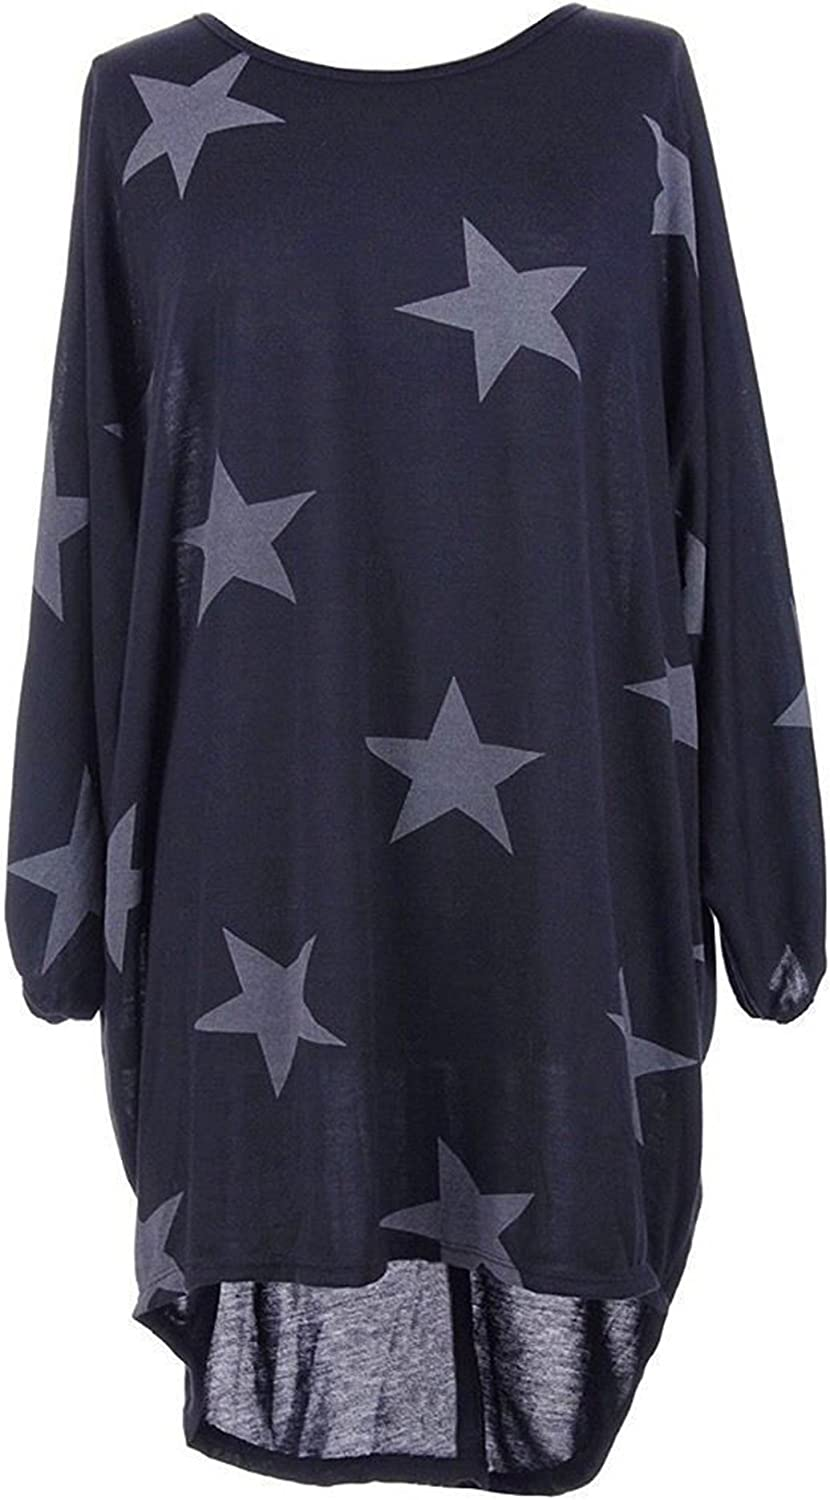 ZG&DD Women's Star Print Dress Round Neck Long Sleeve Summer Casual Loose Tshirt Dress